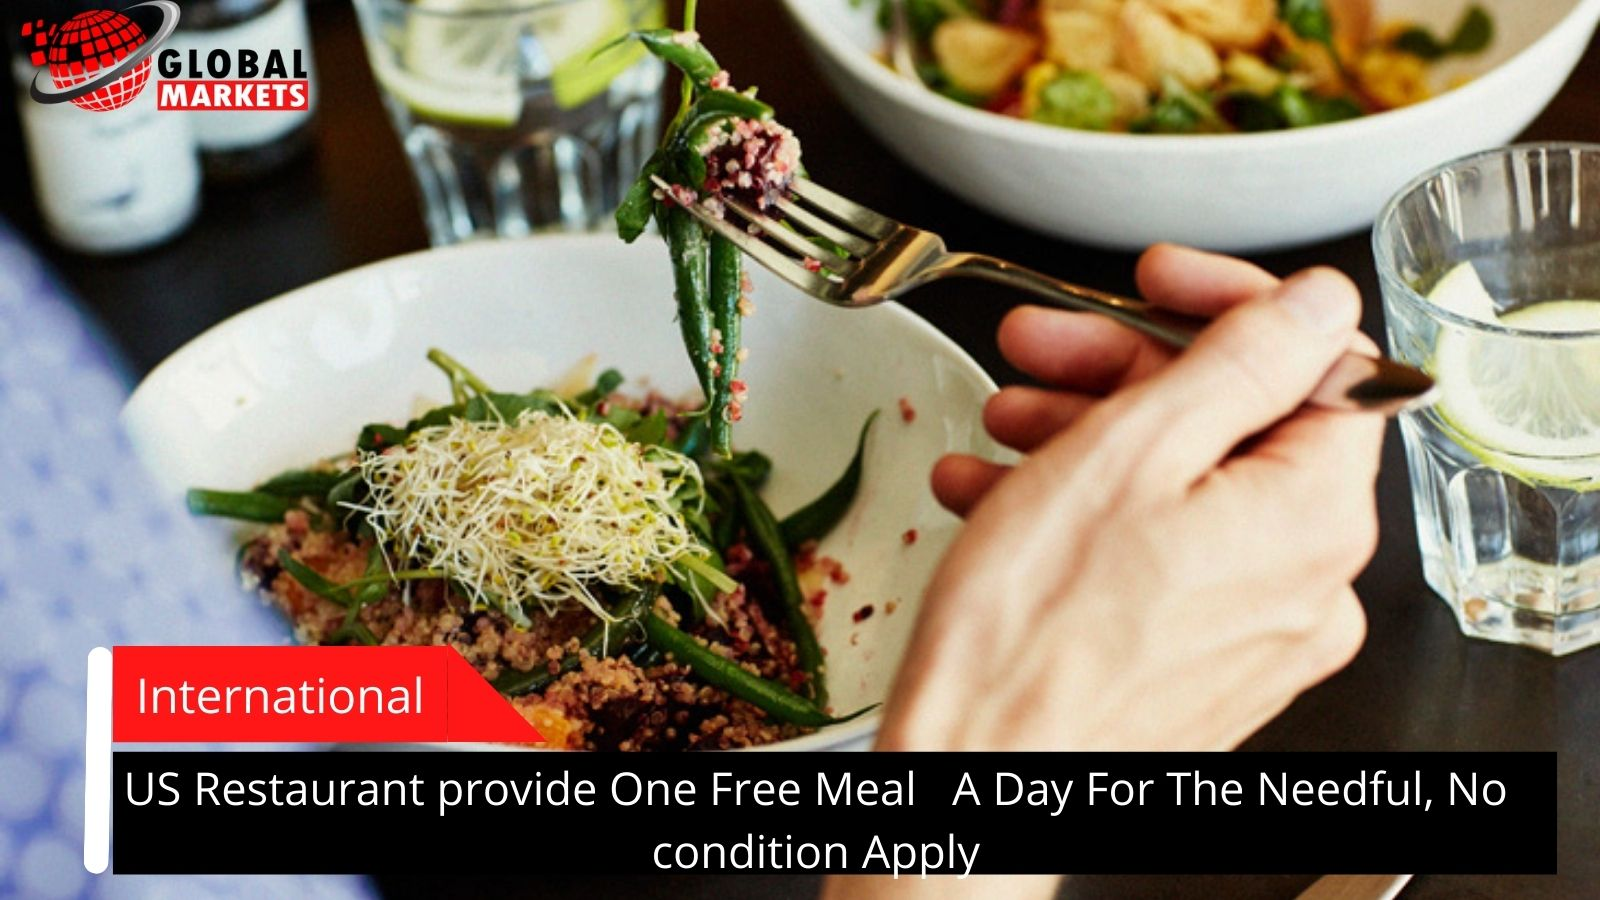 US Restaurant provide One Free Meal   A Day For The Needful, No condition Apply